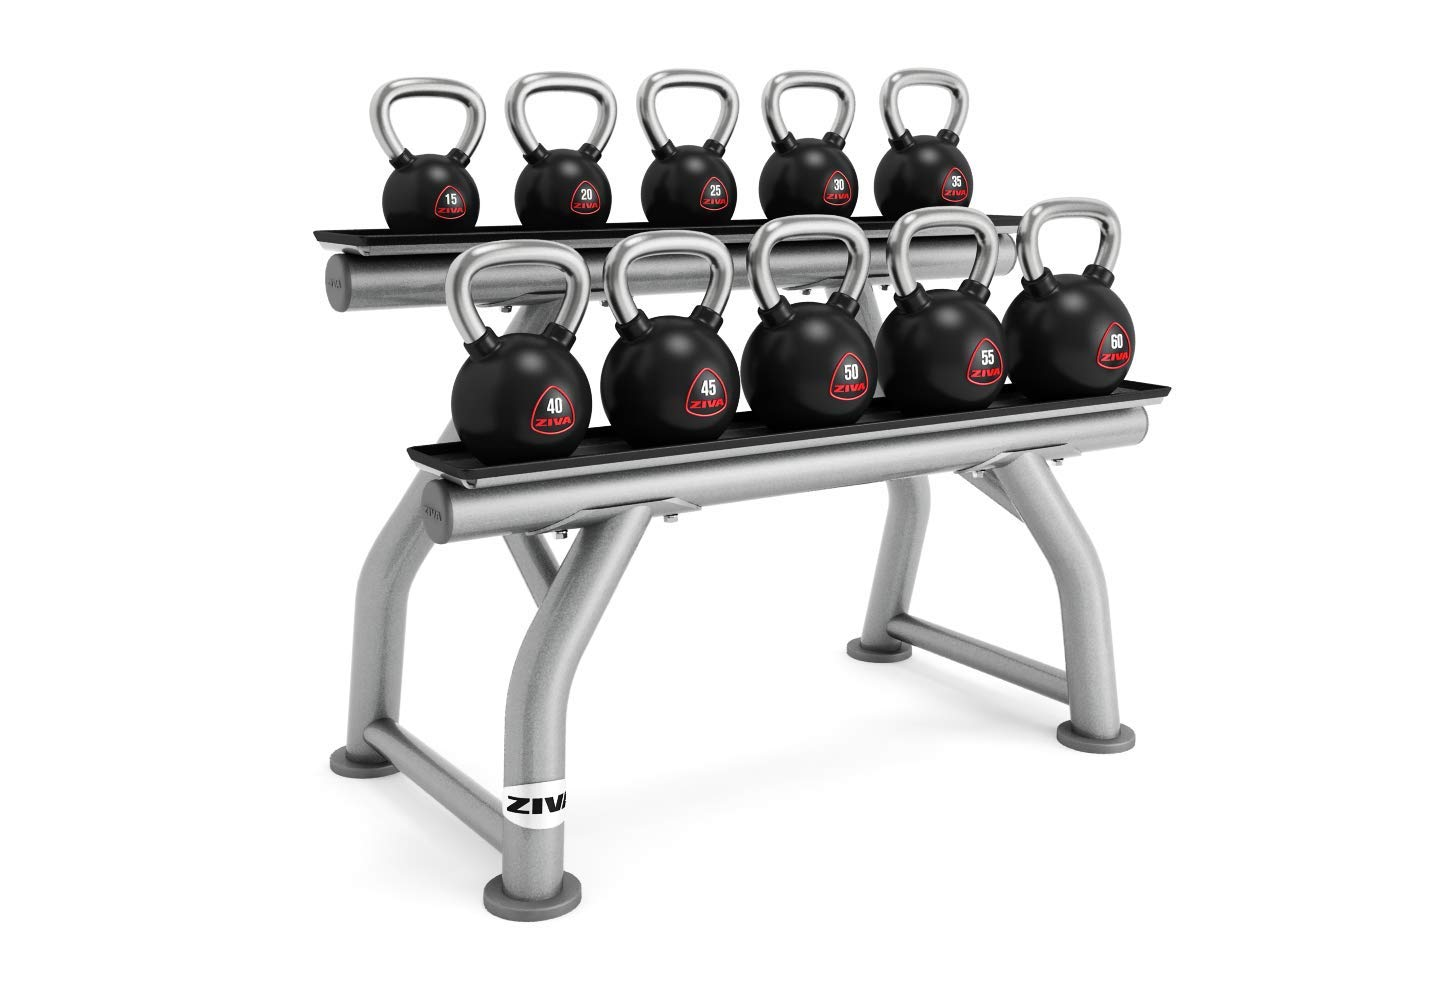 ZIVA SL Kettlebell Rack for Gym, Home Storage - 3mm Thick Round 11-Gauge Steel Frame, Rubber Saddles - Holds 10 Kettlebells (Sold Separately), Platinum, One Size by ZIVA